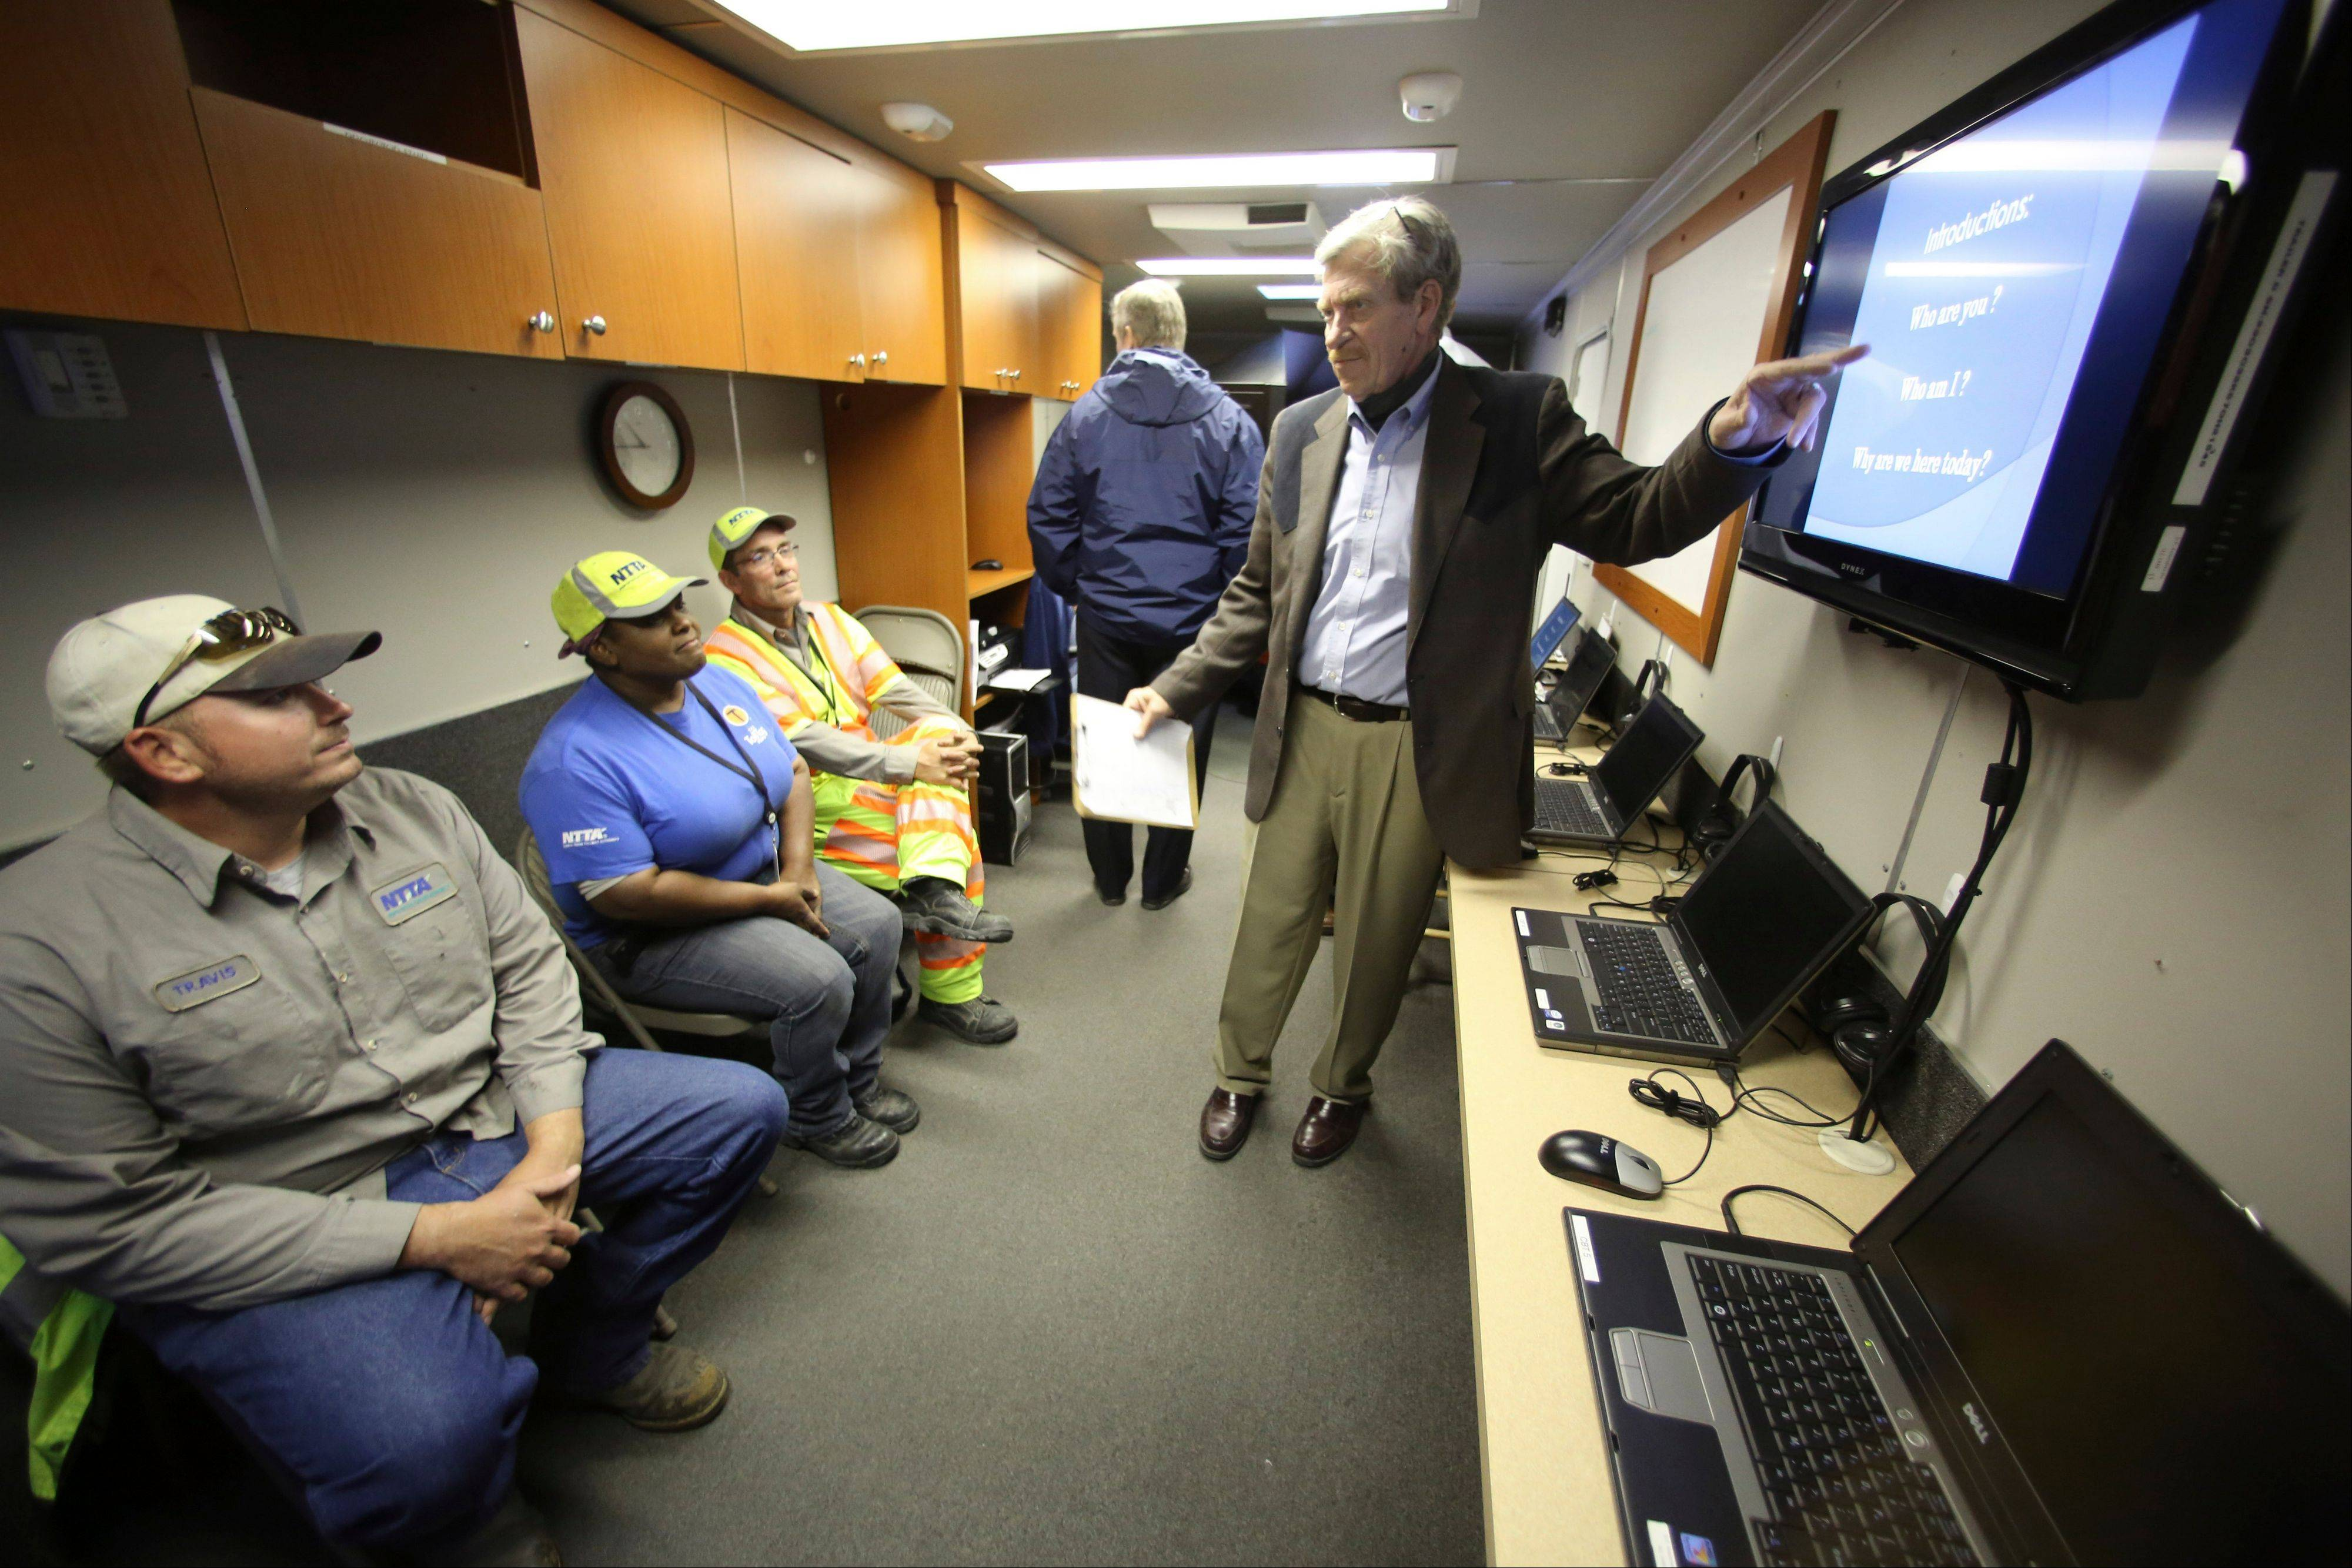 Instructor J. Stephens, right, talks to drivers, from left, Travis Roebuck, Regina Hall and Terence Mundt, before a snowplow simulator during a North Texas Tollway Authority training class in Plano, Texas.